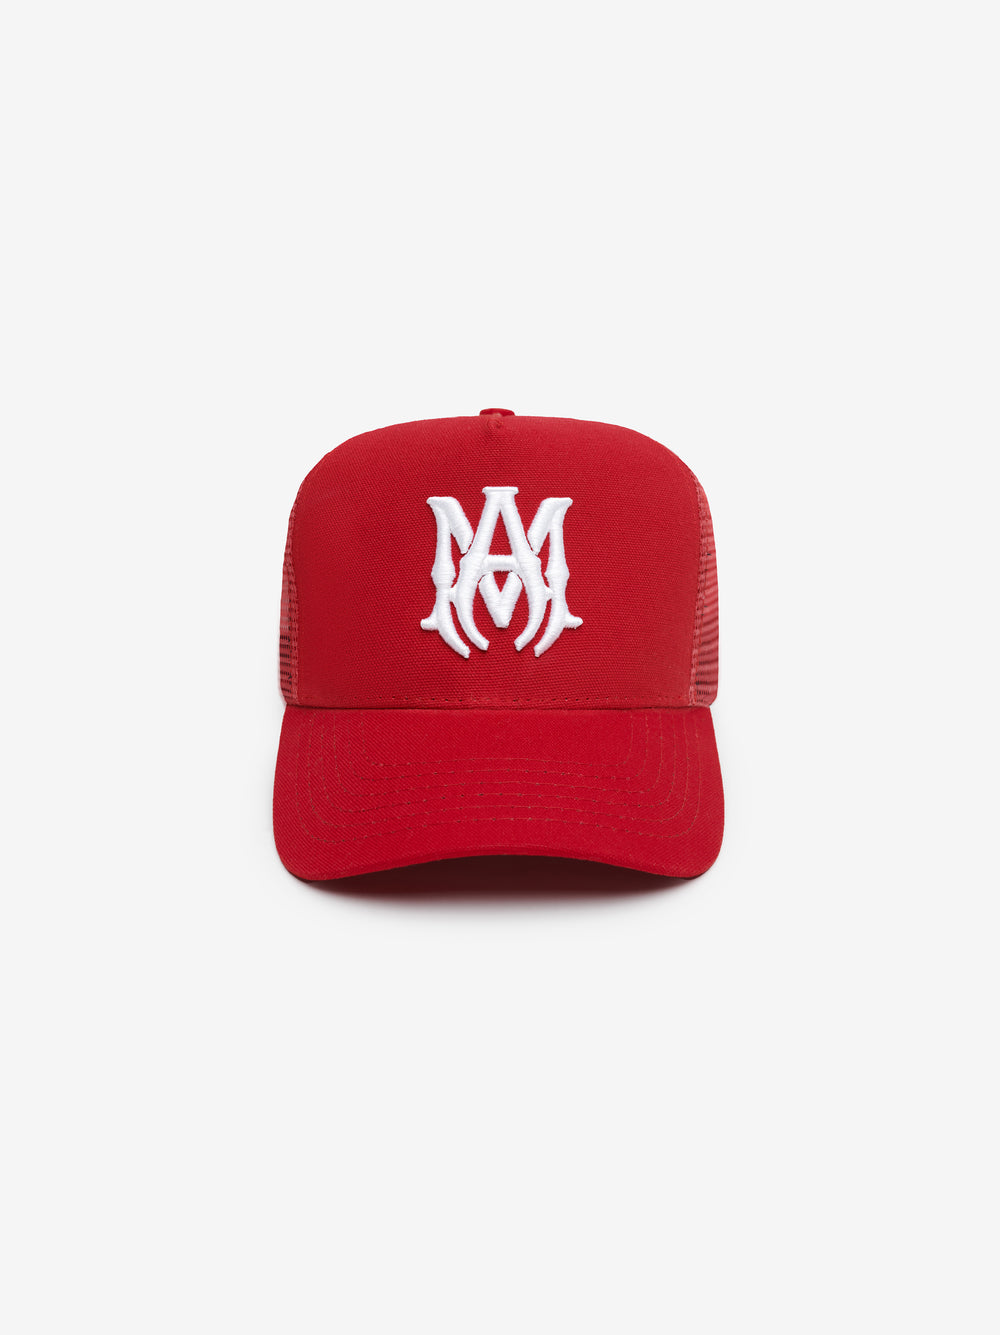 MA TRUCKER HAT - Red